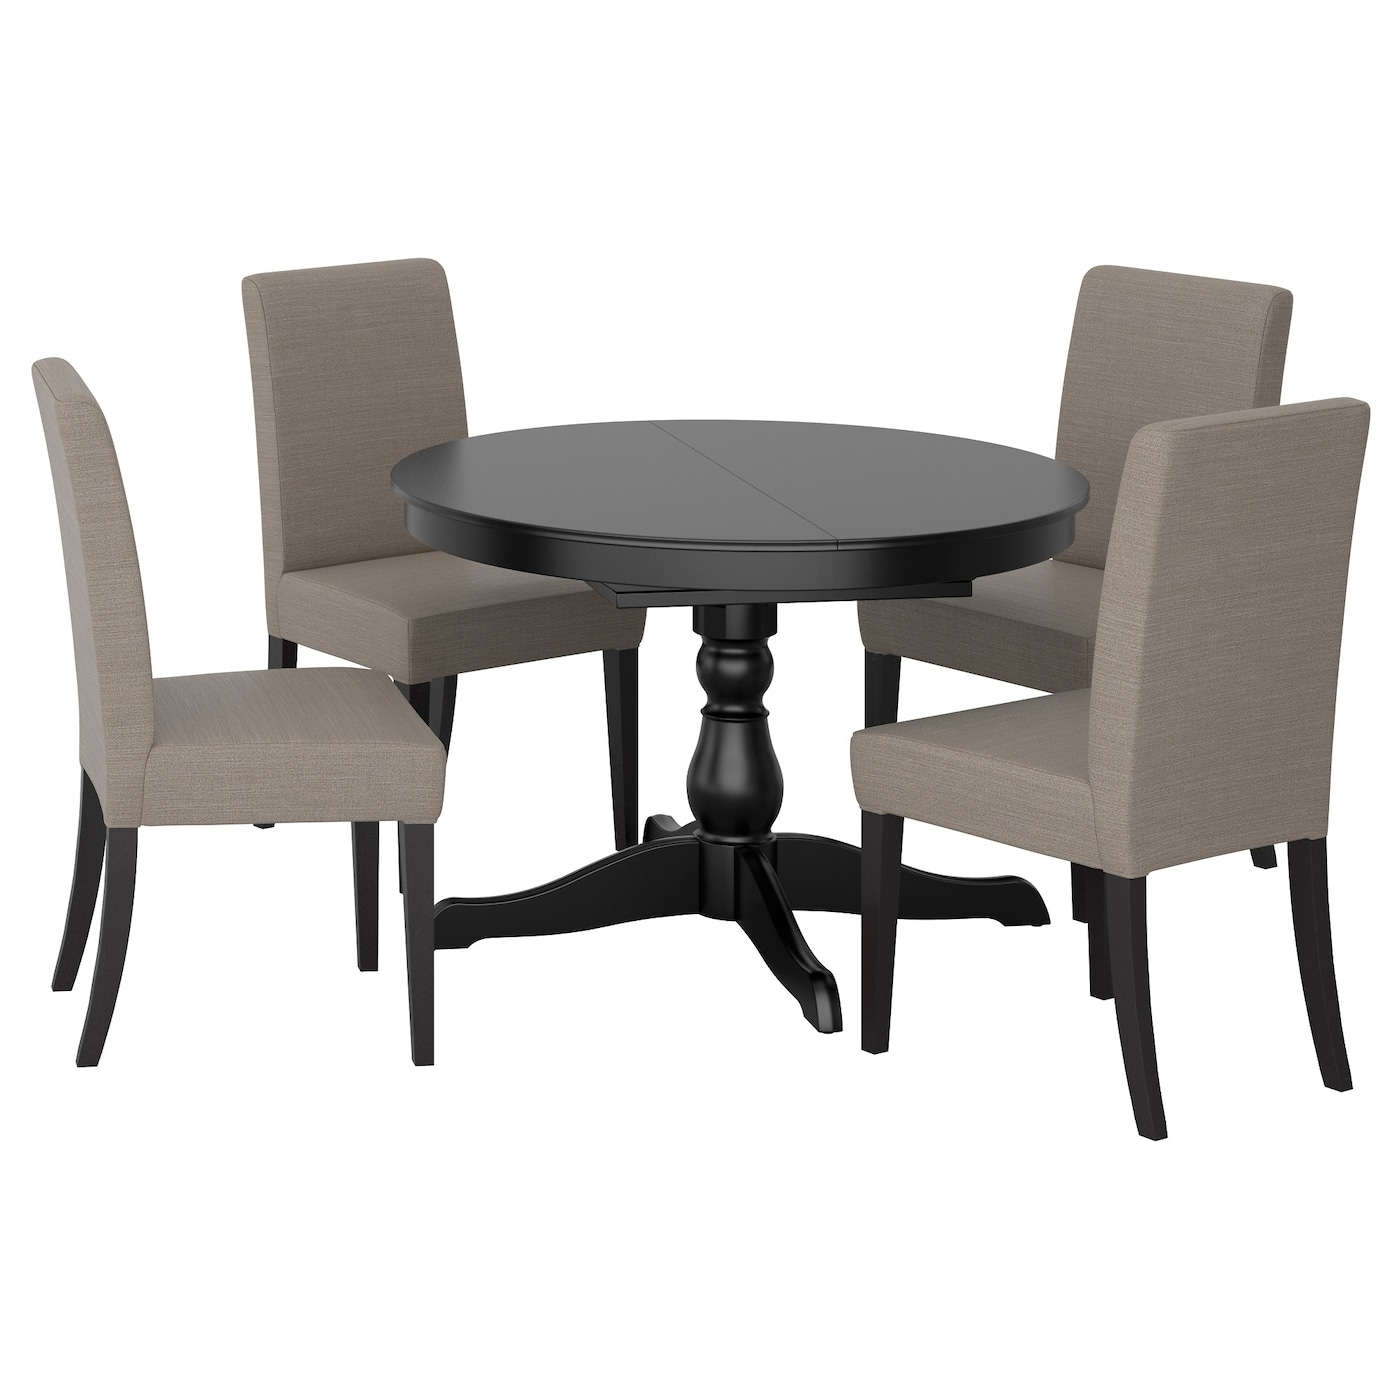 Ingatorp henriksdal table and 4 chairs black nolhaga grey for Dining room table and 4 chairs